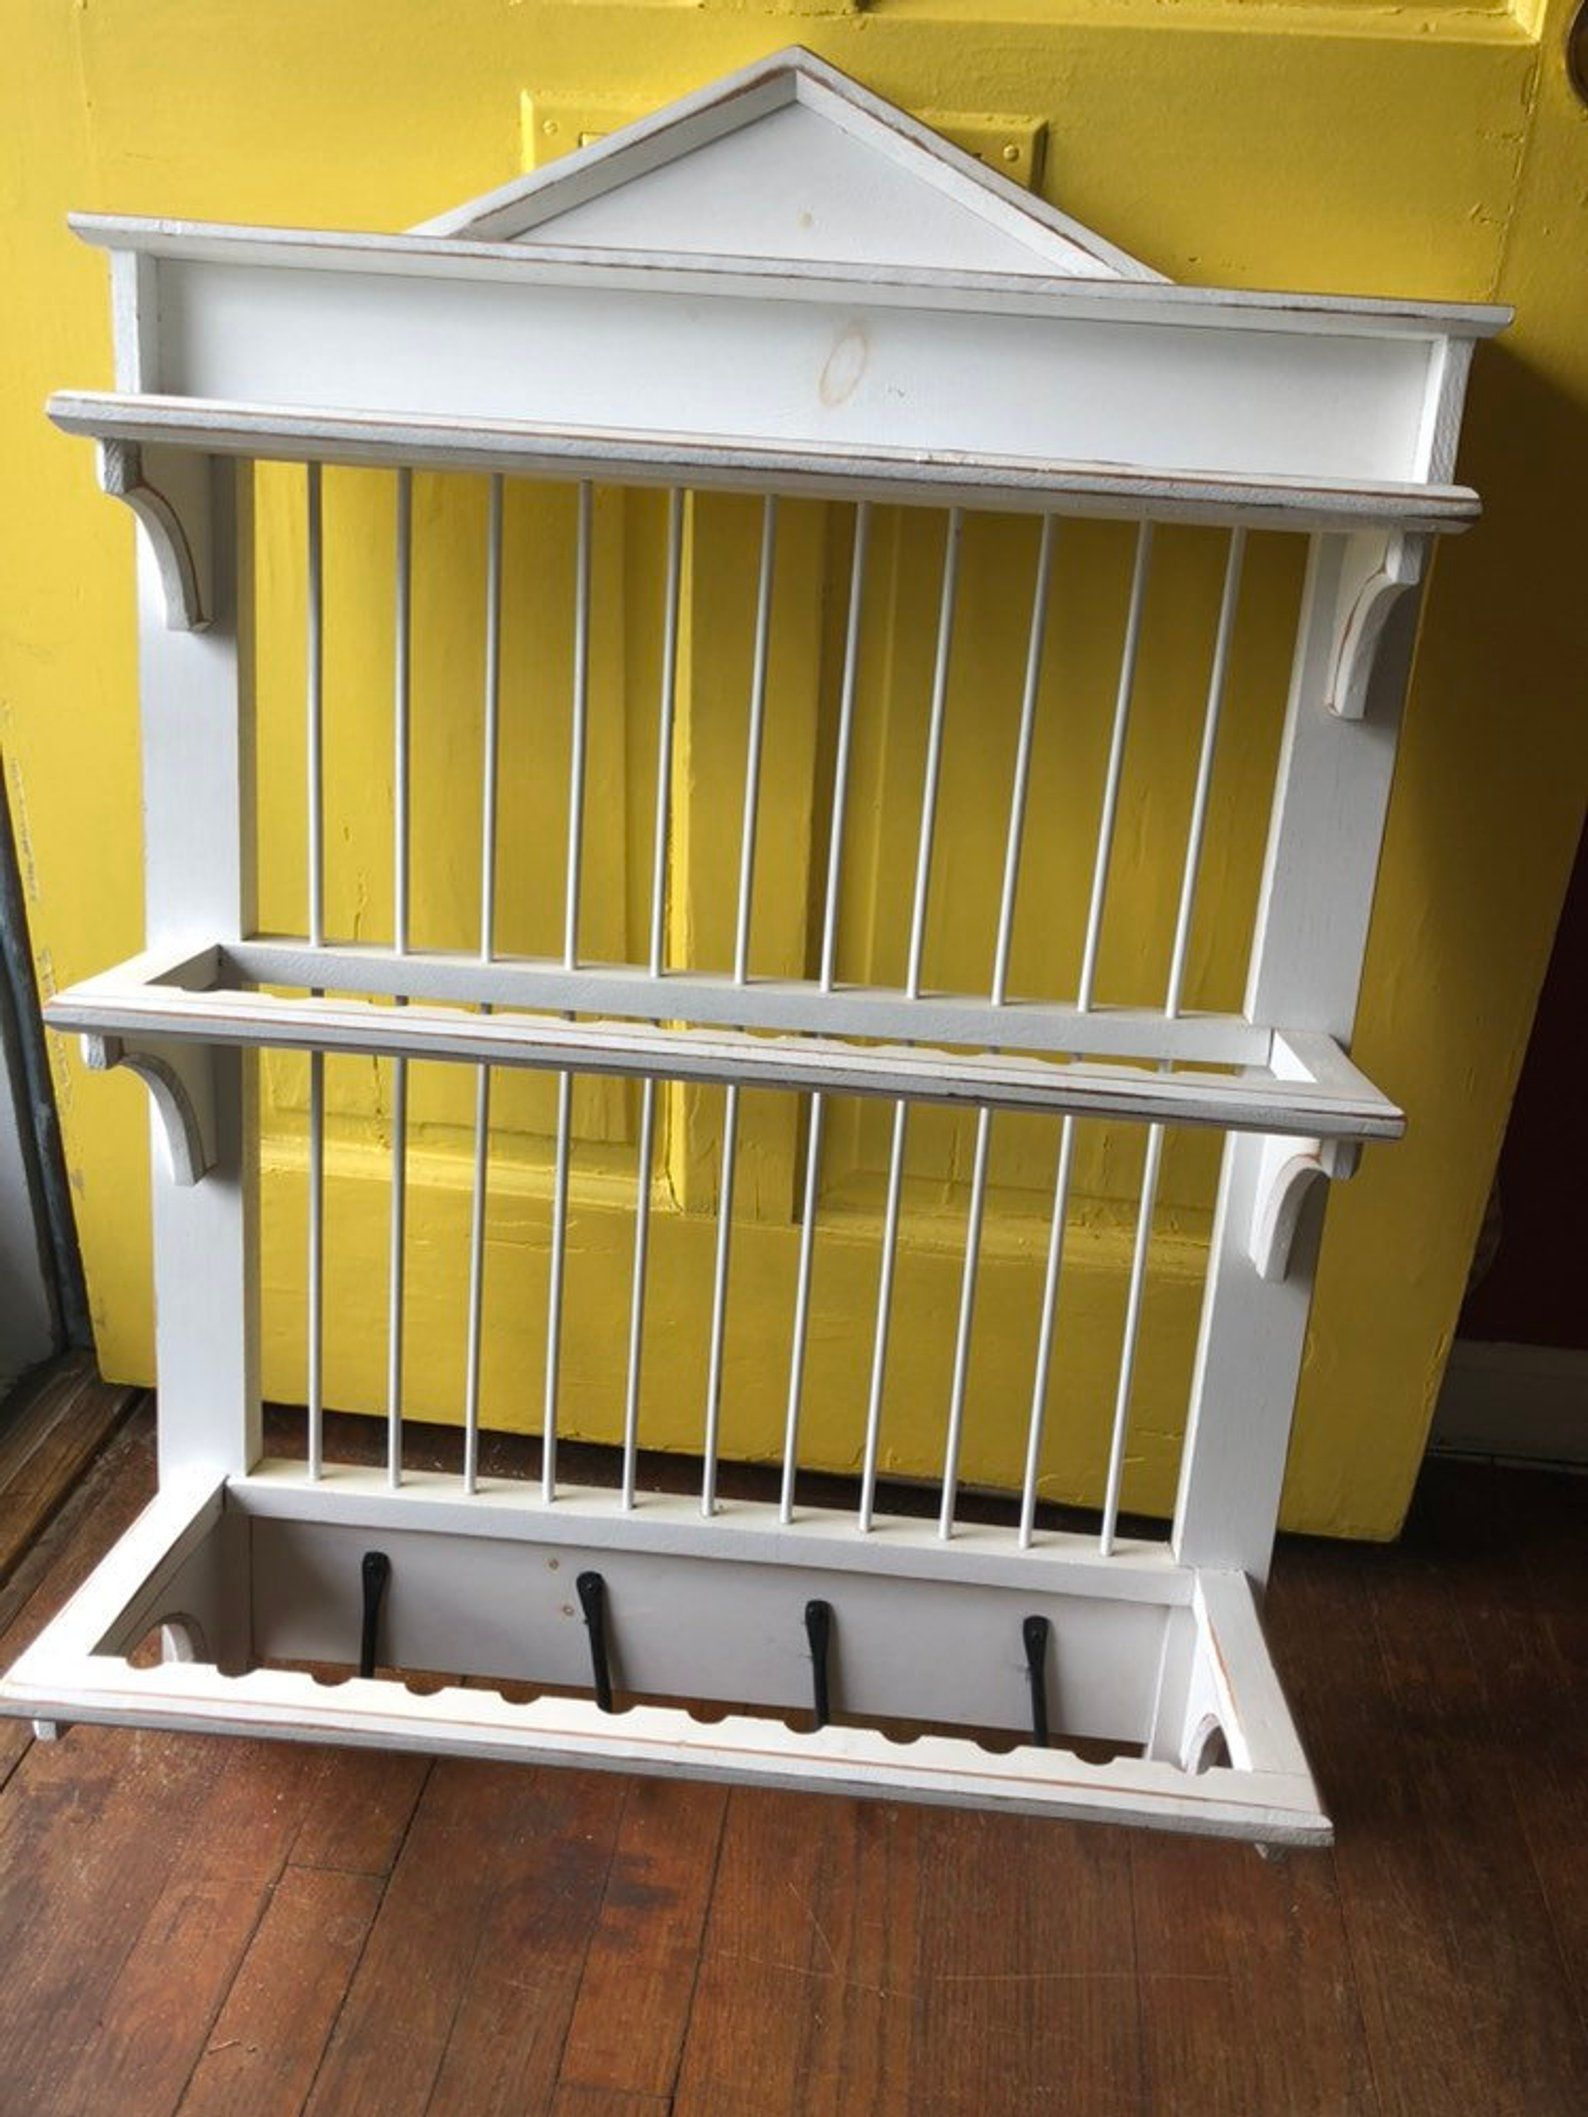 VINTAGE PLATE RACK, Farmhouse, White Wall Plate Rack, Cup and Plate Rack, Amish Plate Rack, Wall Rack, Shop Display at Nova Vault #plateracks